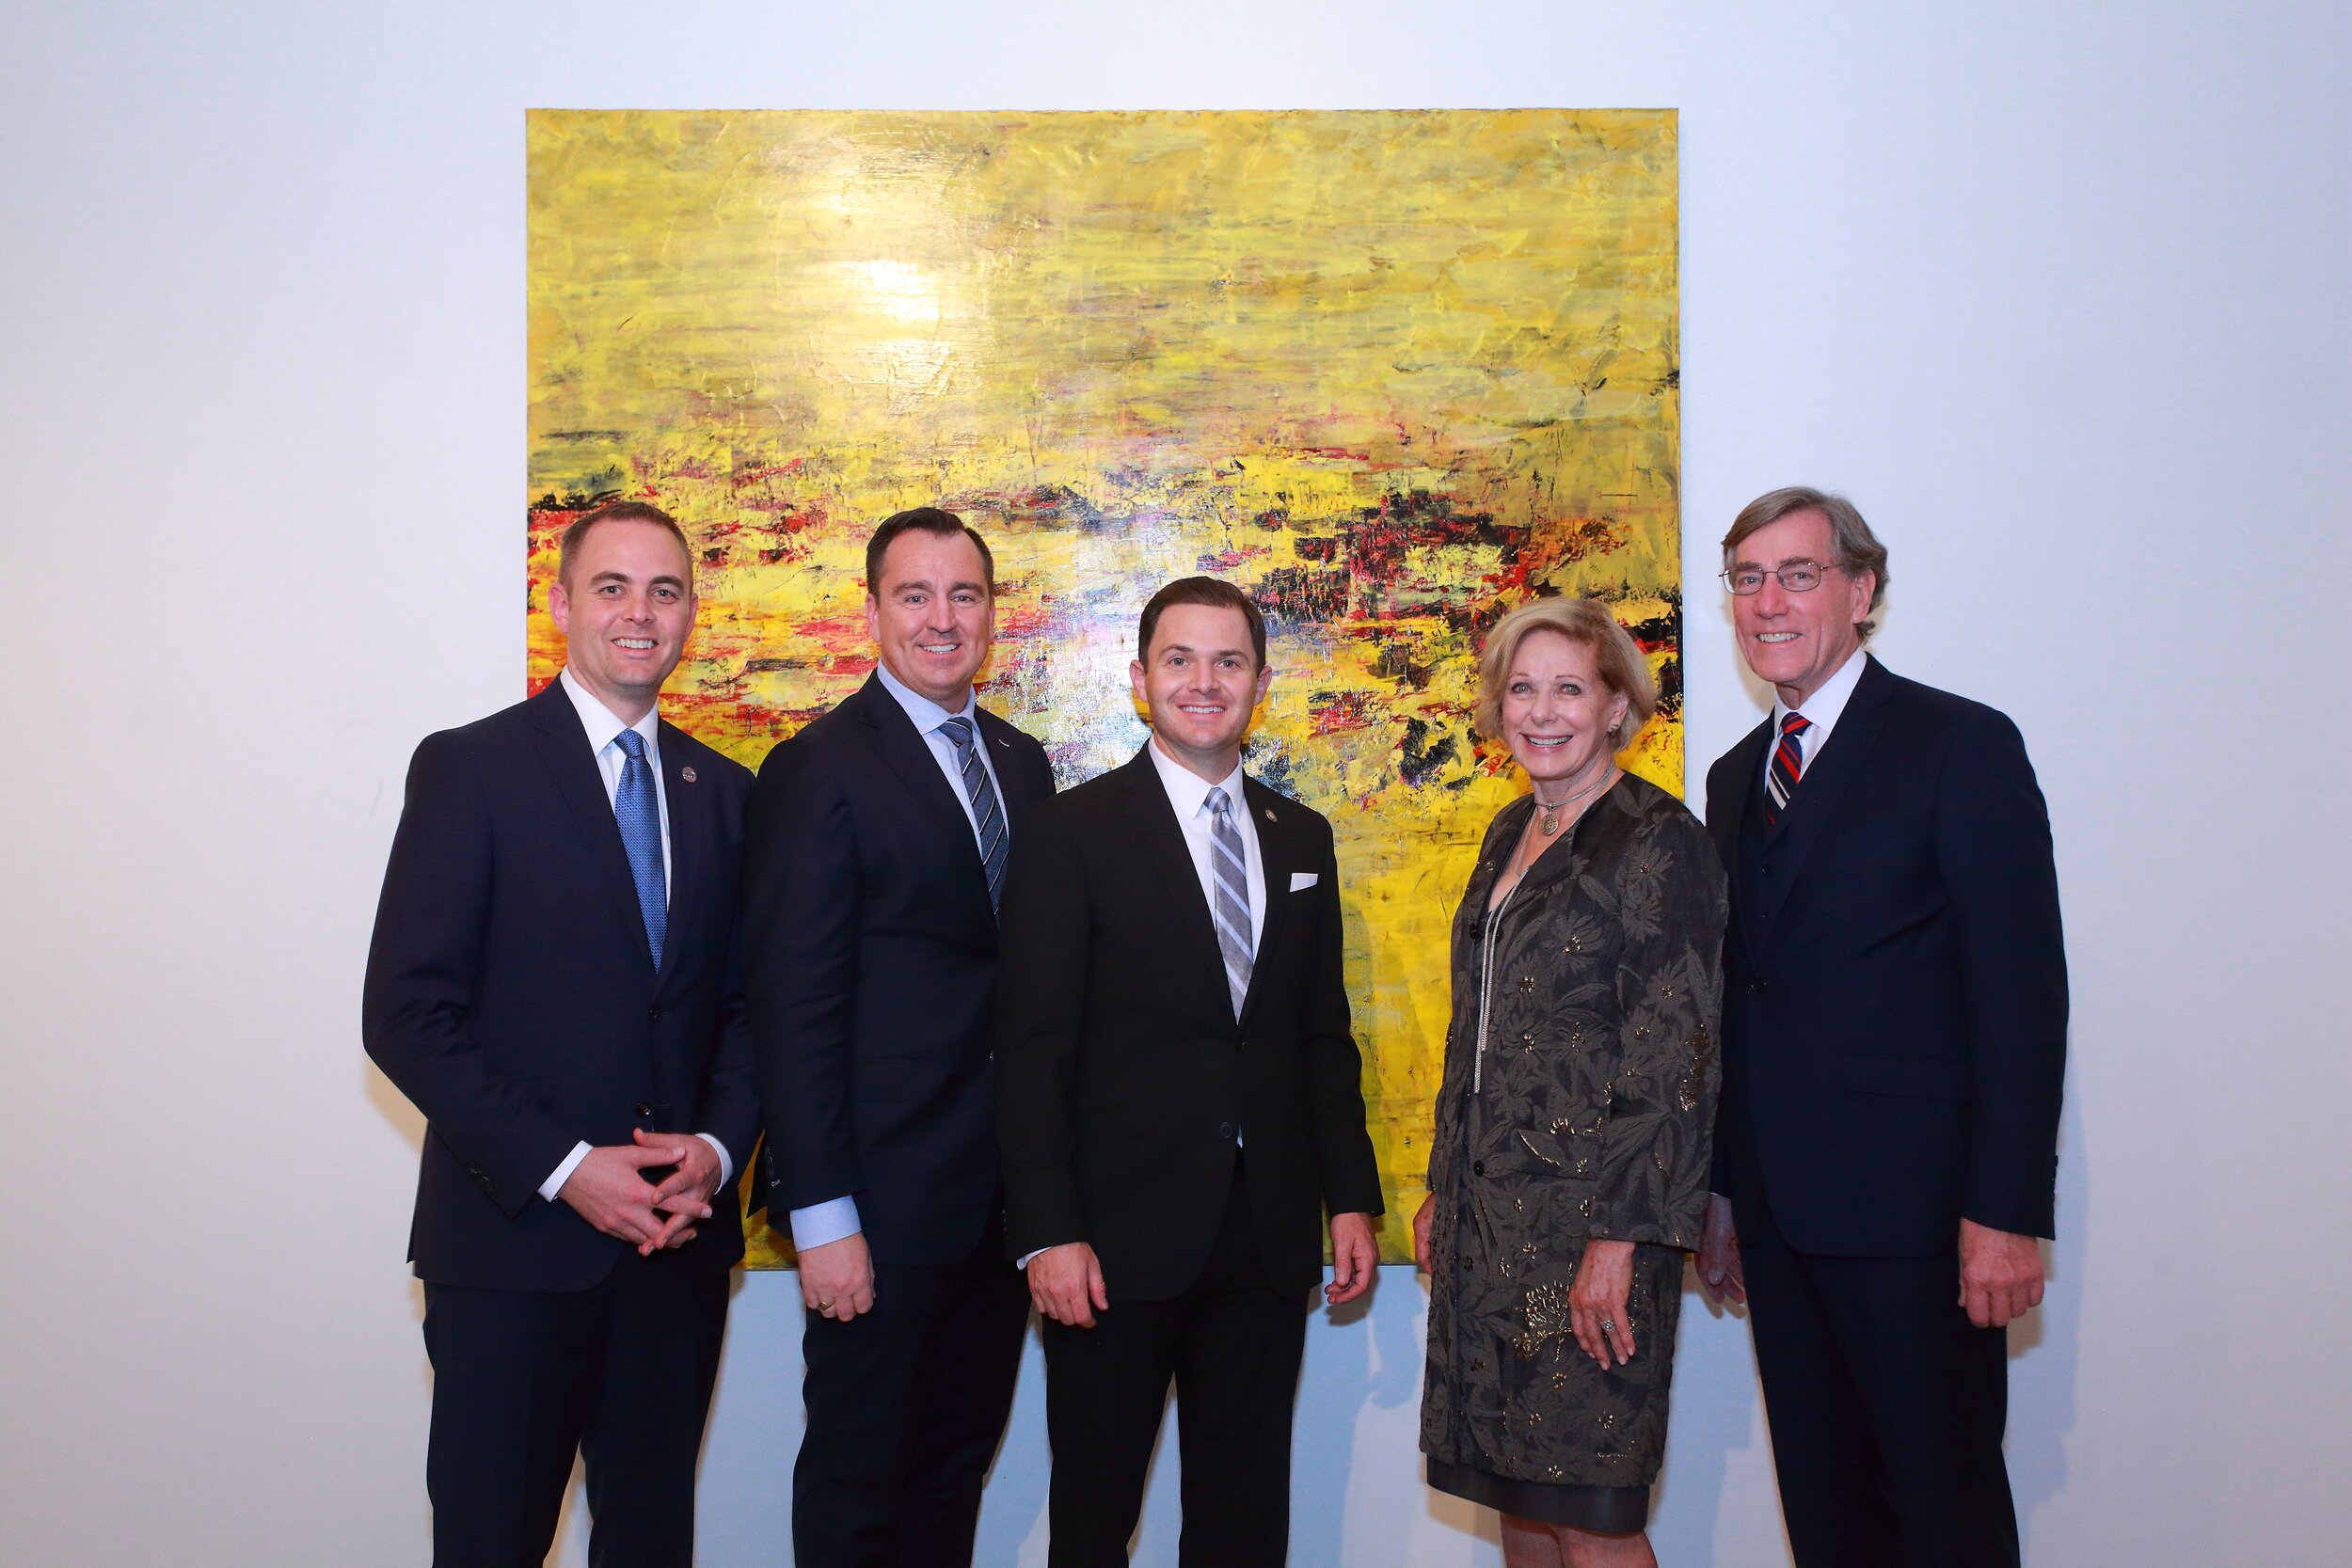 Miles Hansen, Gregory Hughes, Brad Herbert, Susan Swartz, and A. Scott Anderson pictured in front of Evolving Visions 3, a gift to CAFA from Zions Bank and the State of Utah